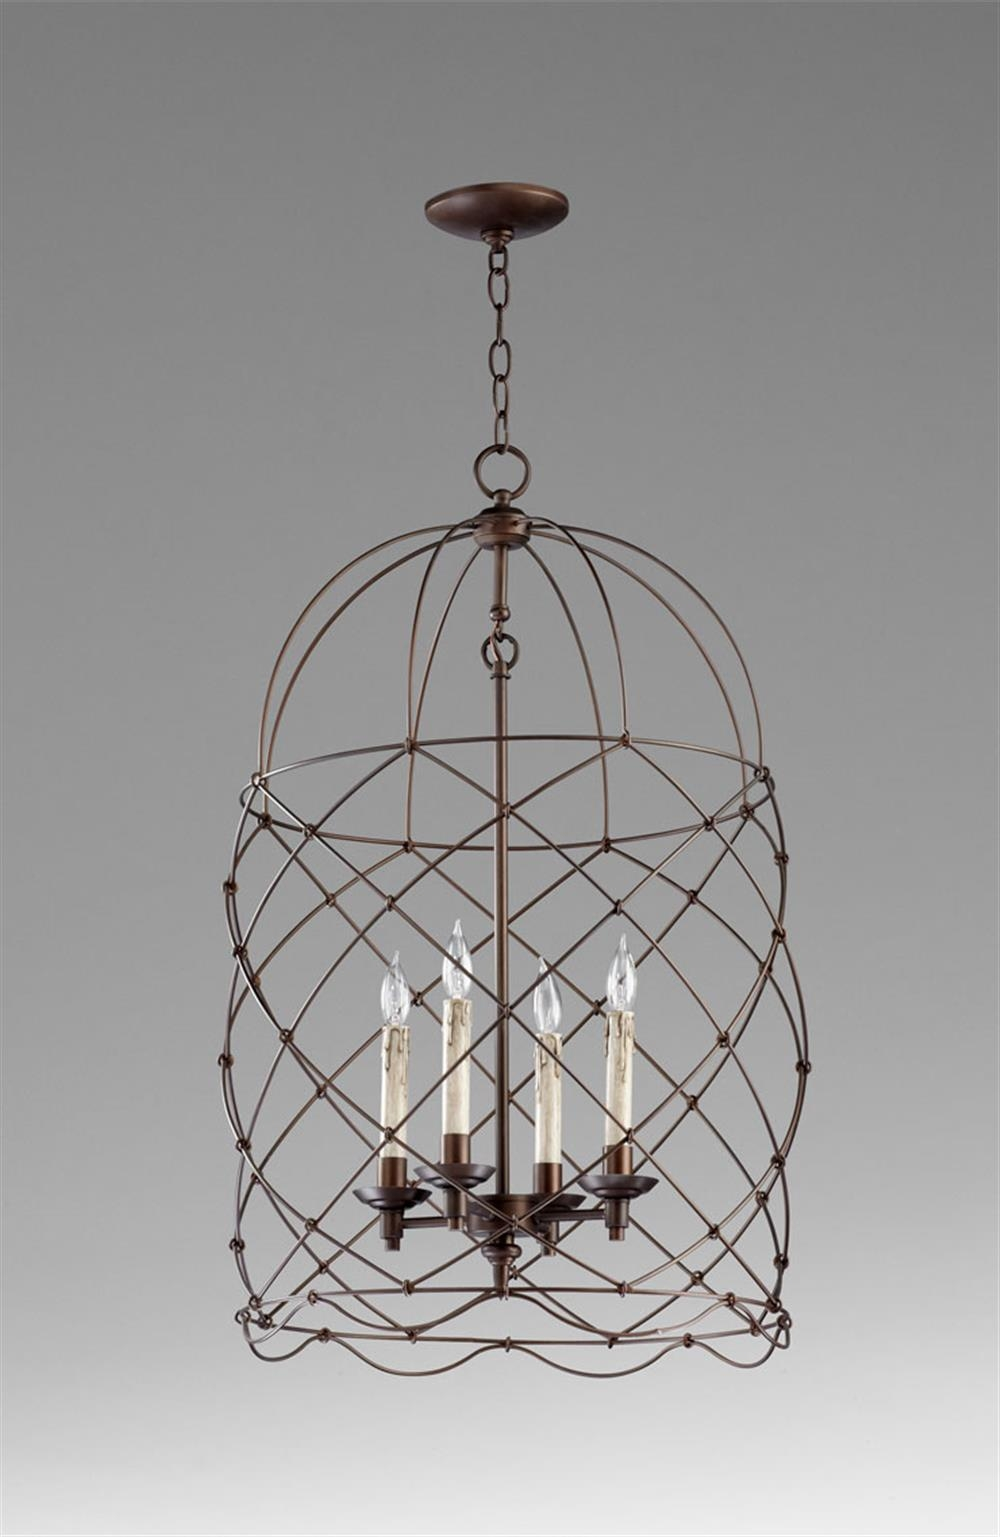 Popular Photo of Caged Chandelier